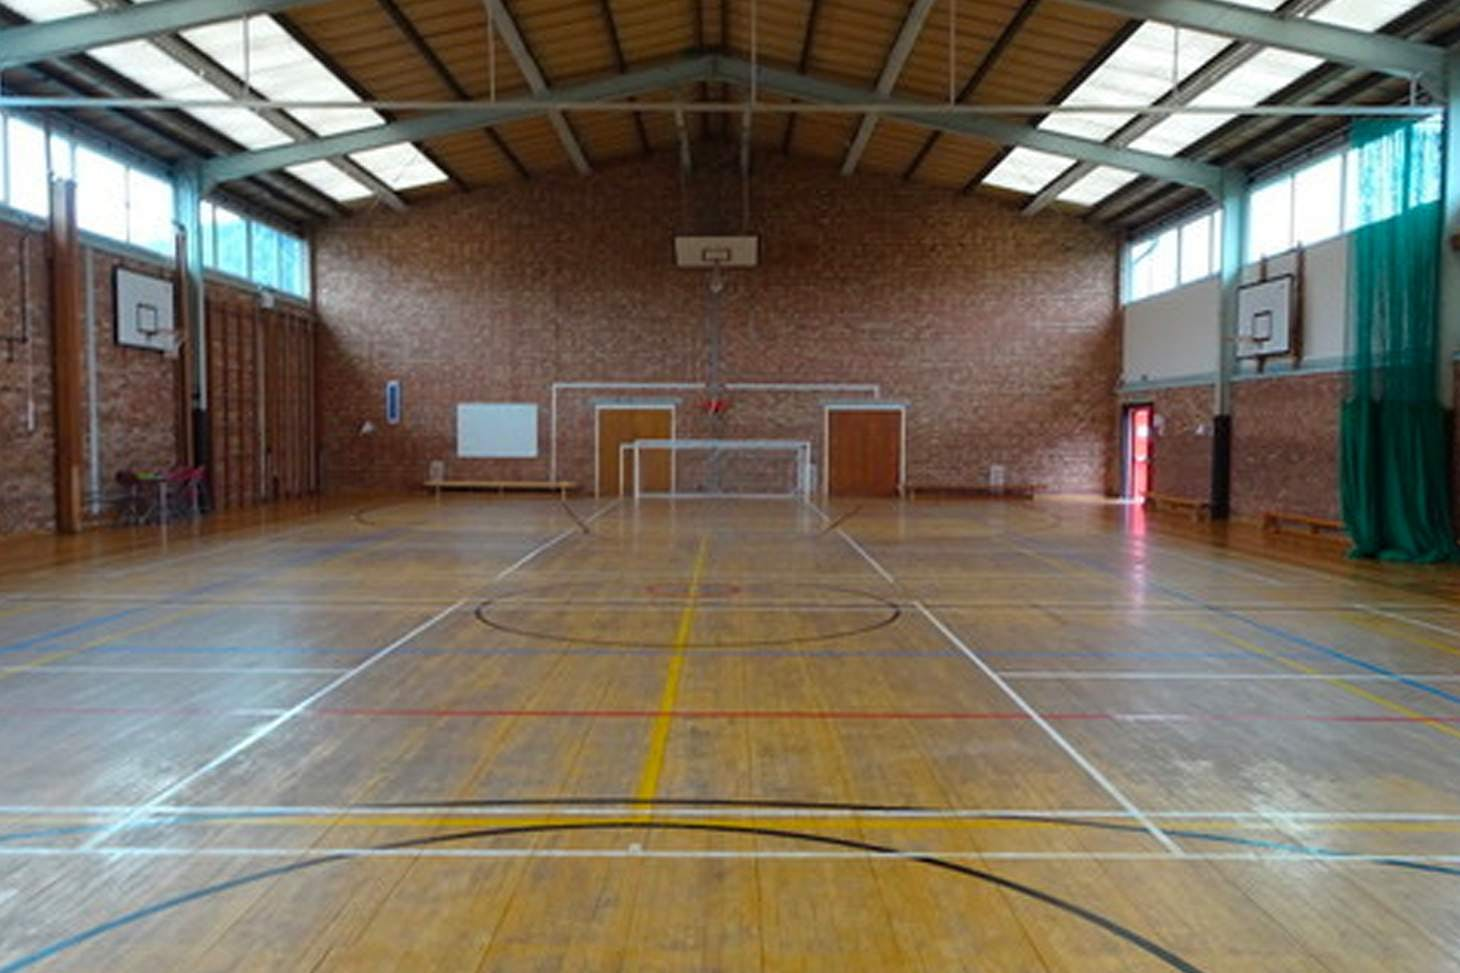 Trevelyan Middle School Nets | Sports hall cricket facilities